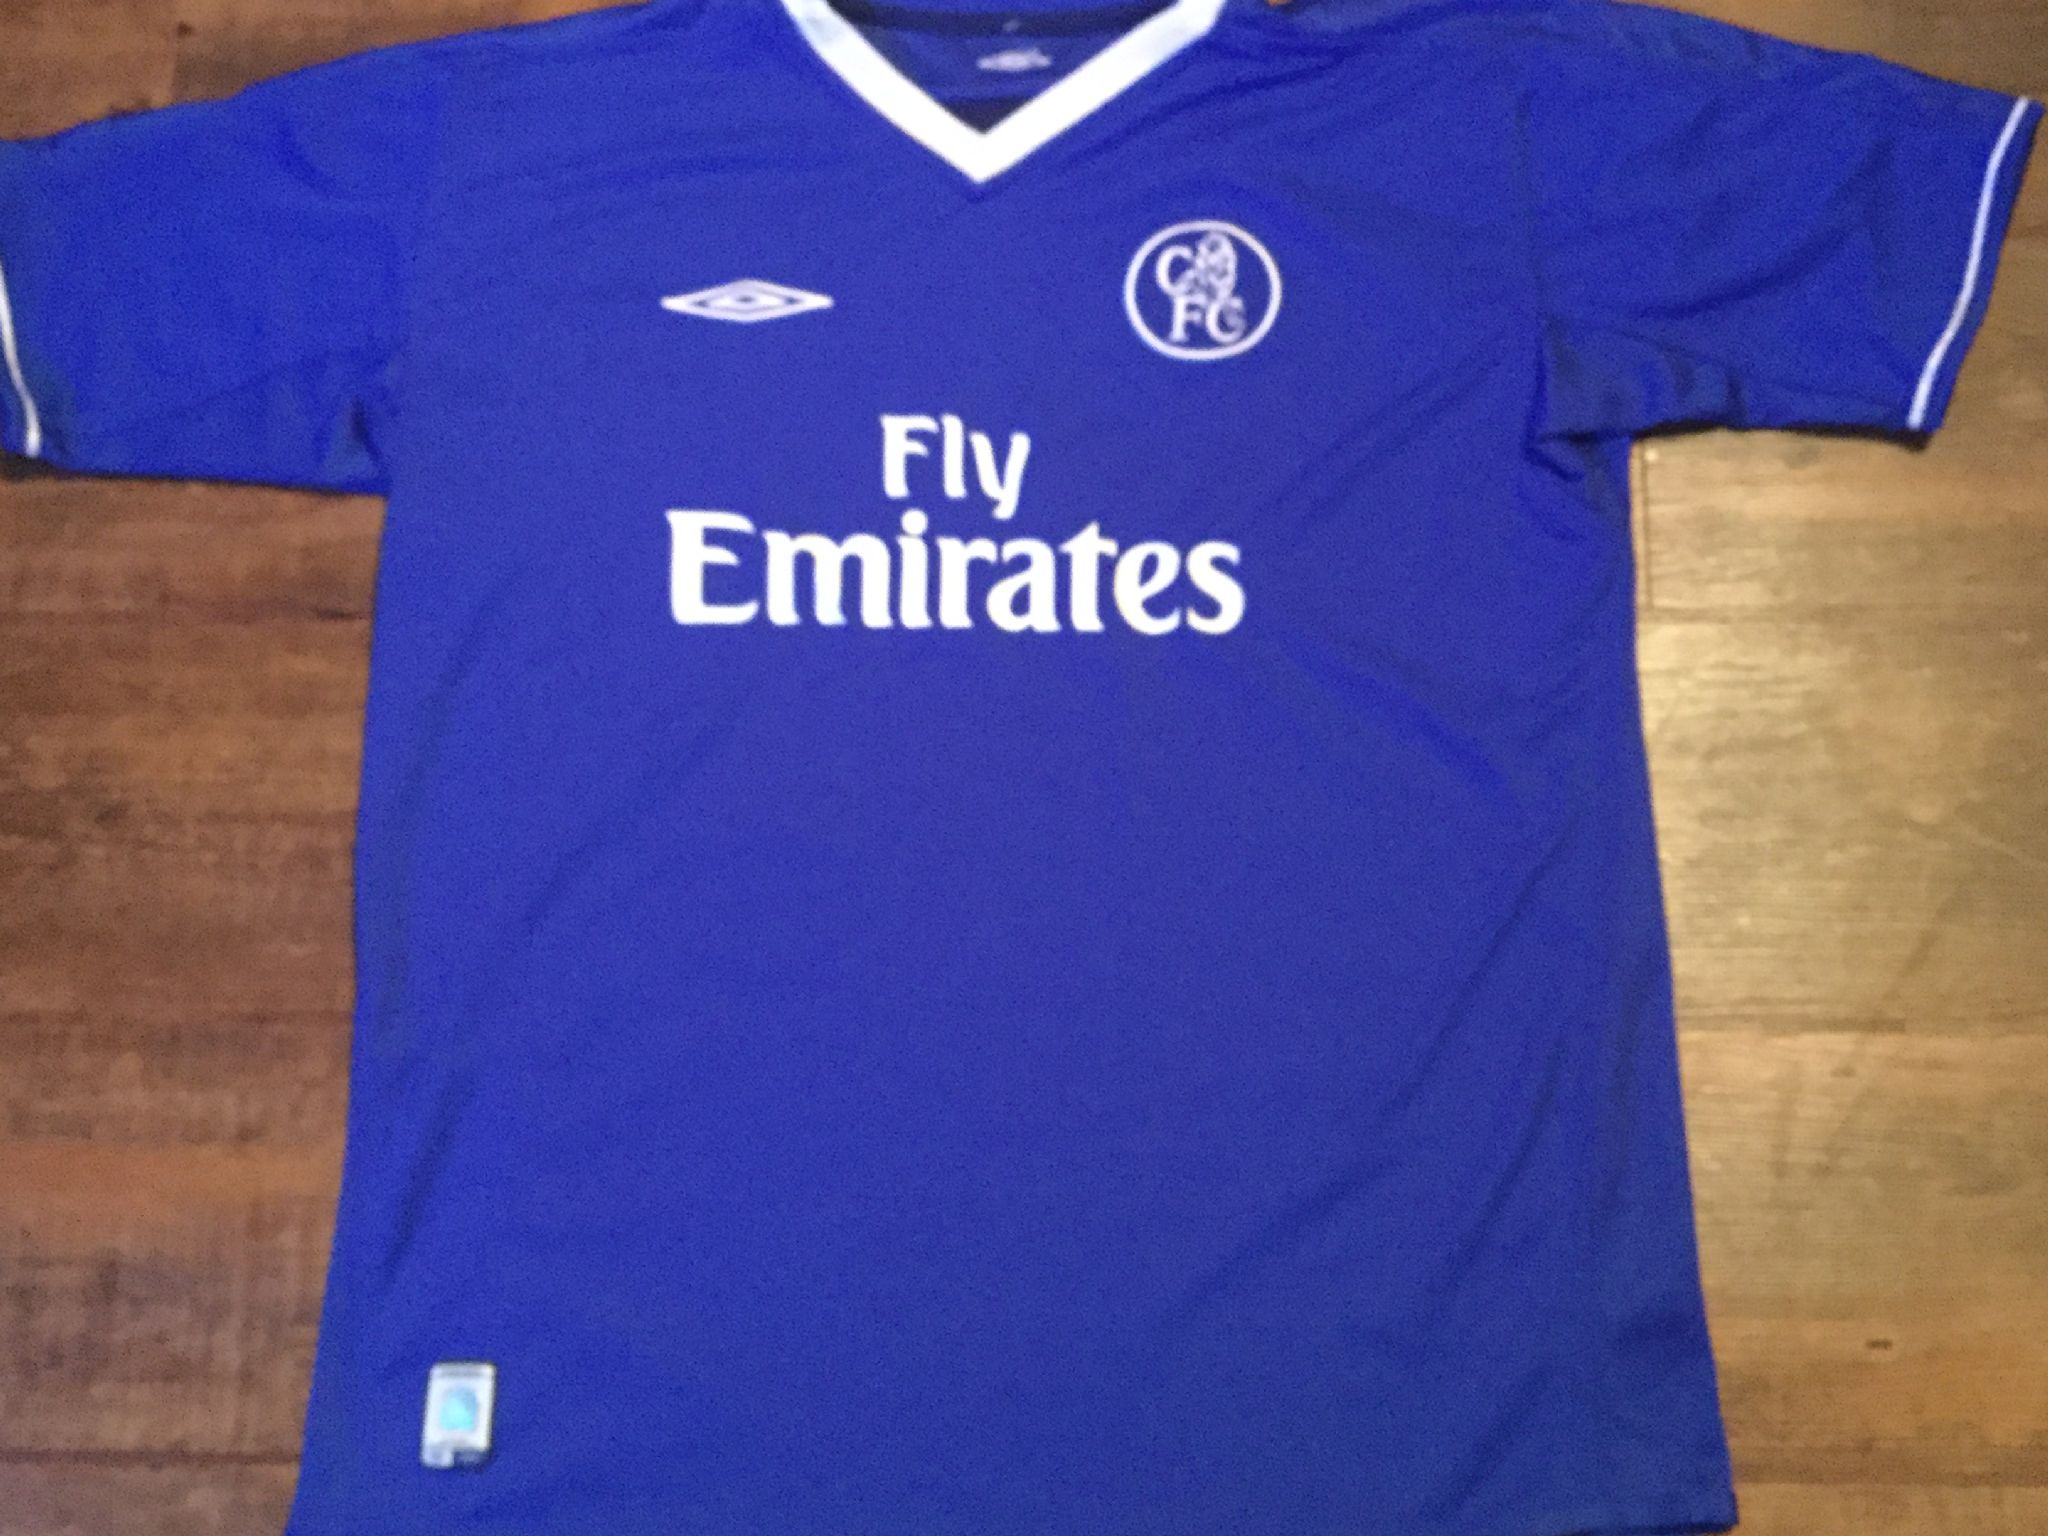 competitive price 2f85c 33225 Global Classic Football Shirts | 2003 Chelsea Vintage Old ...